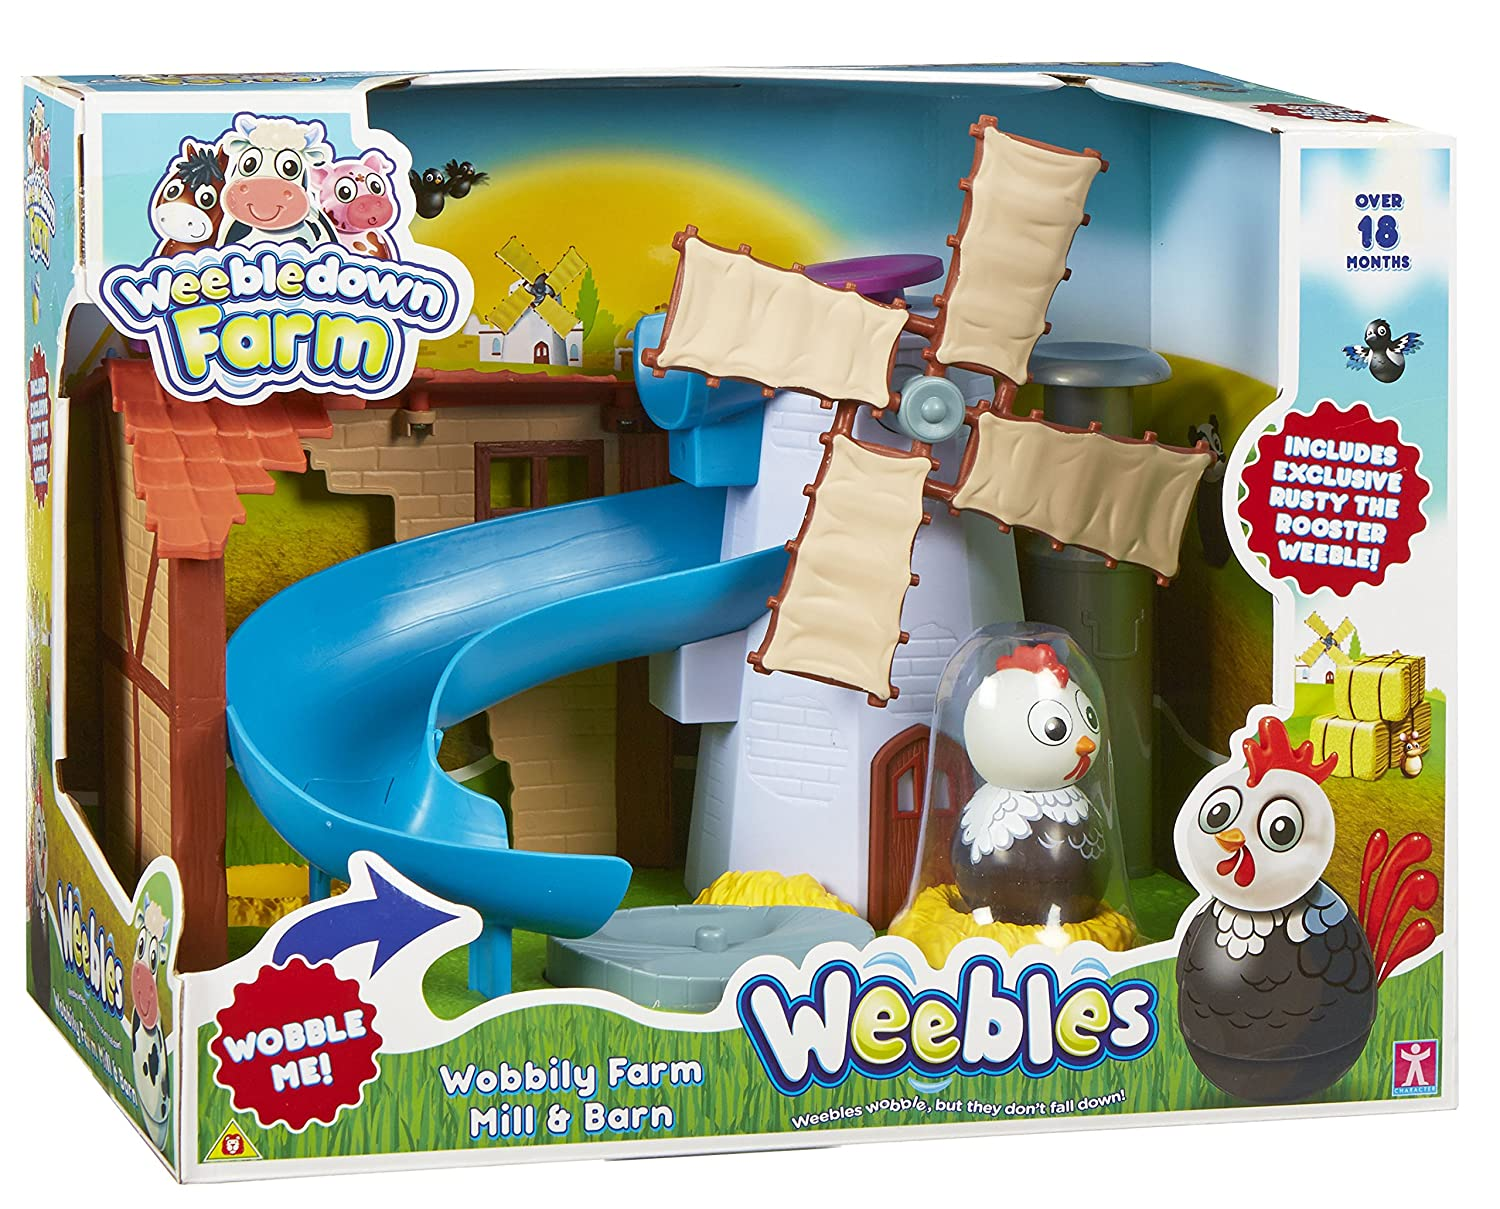 Playskool Weebles Musical Treehouse Part - 37: Amazon.com: Weebledown Farm Weebles Wobbily Farm Mill U0026 Barn Playset By  Character Options: Toys U0026 Games